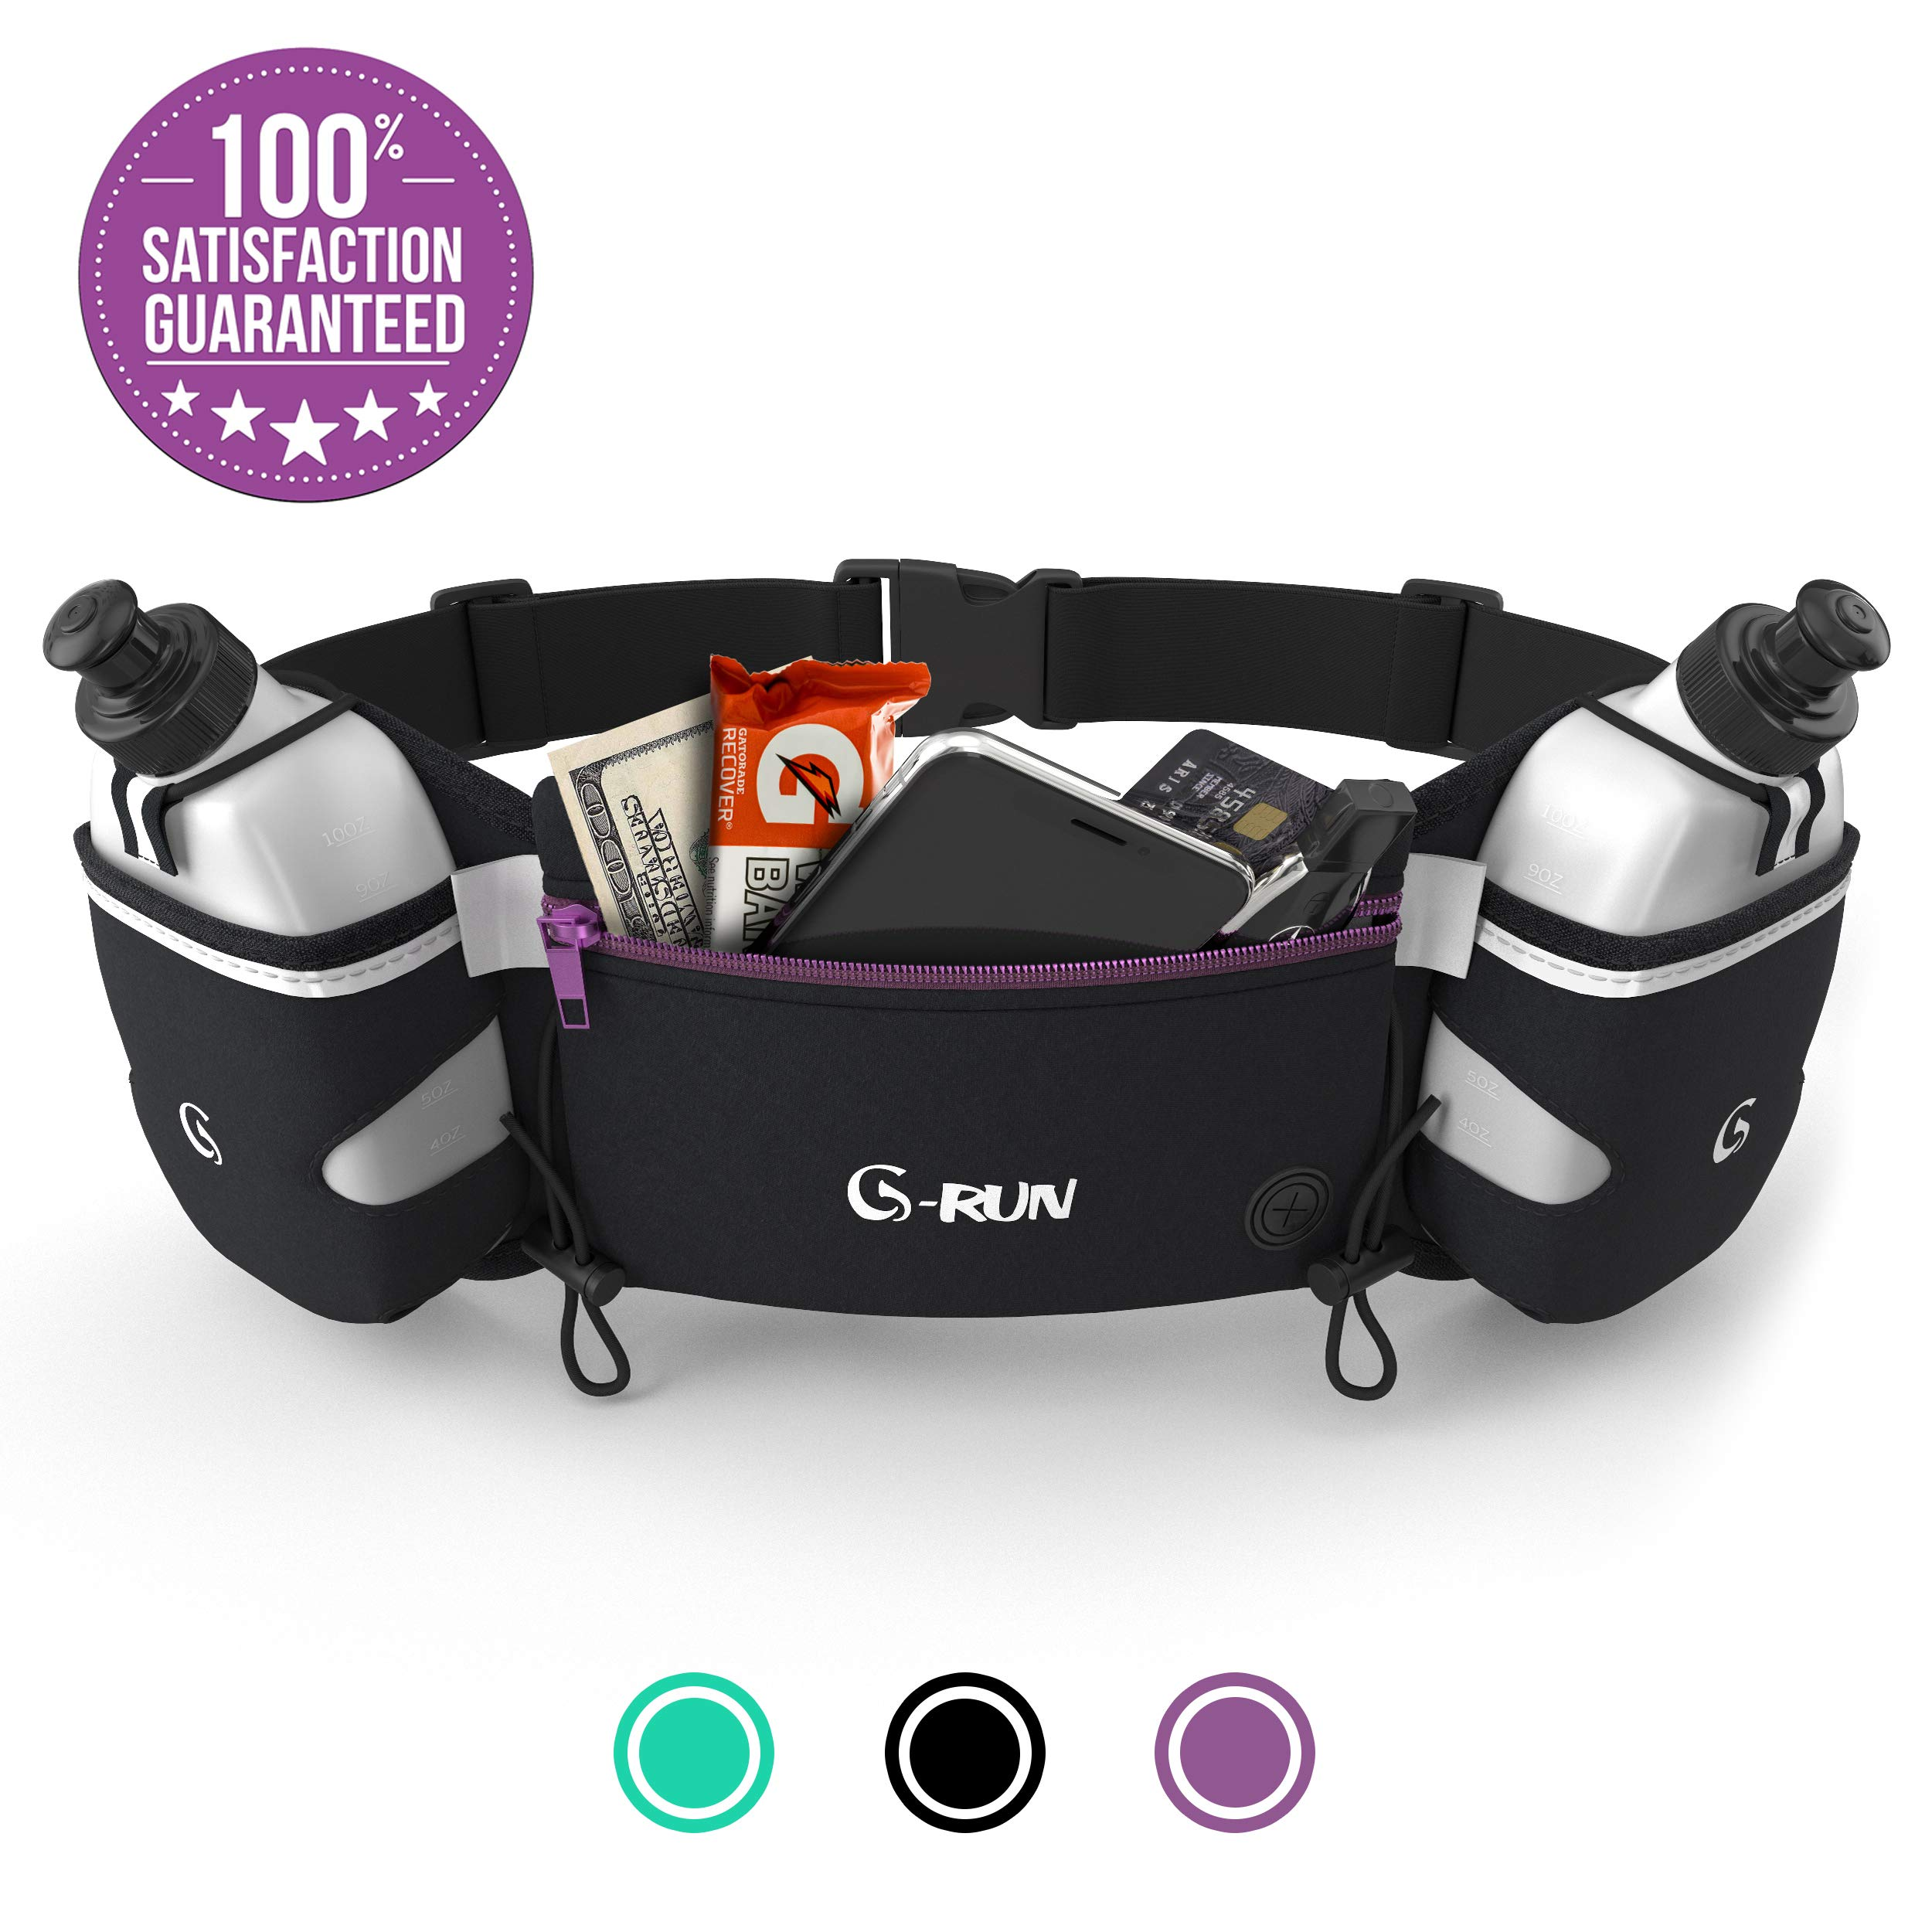 Hydration Running Belt With Bottles - Water Belts For Woman And Men - IPhone Belt For Any Phone Size - Fuel Marathon Race Pack For Runners - Jogging Waist Pouch    by G-RUN